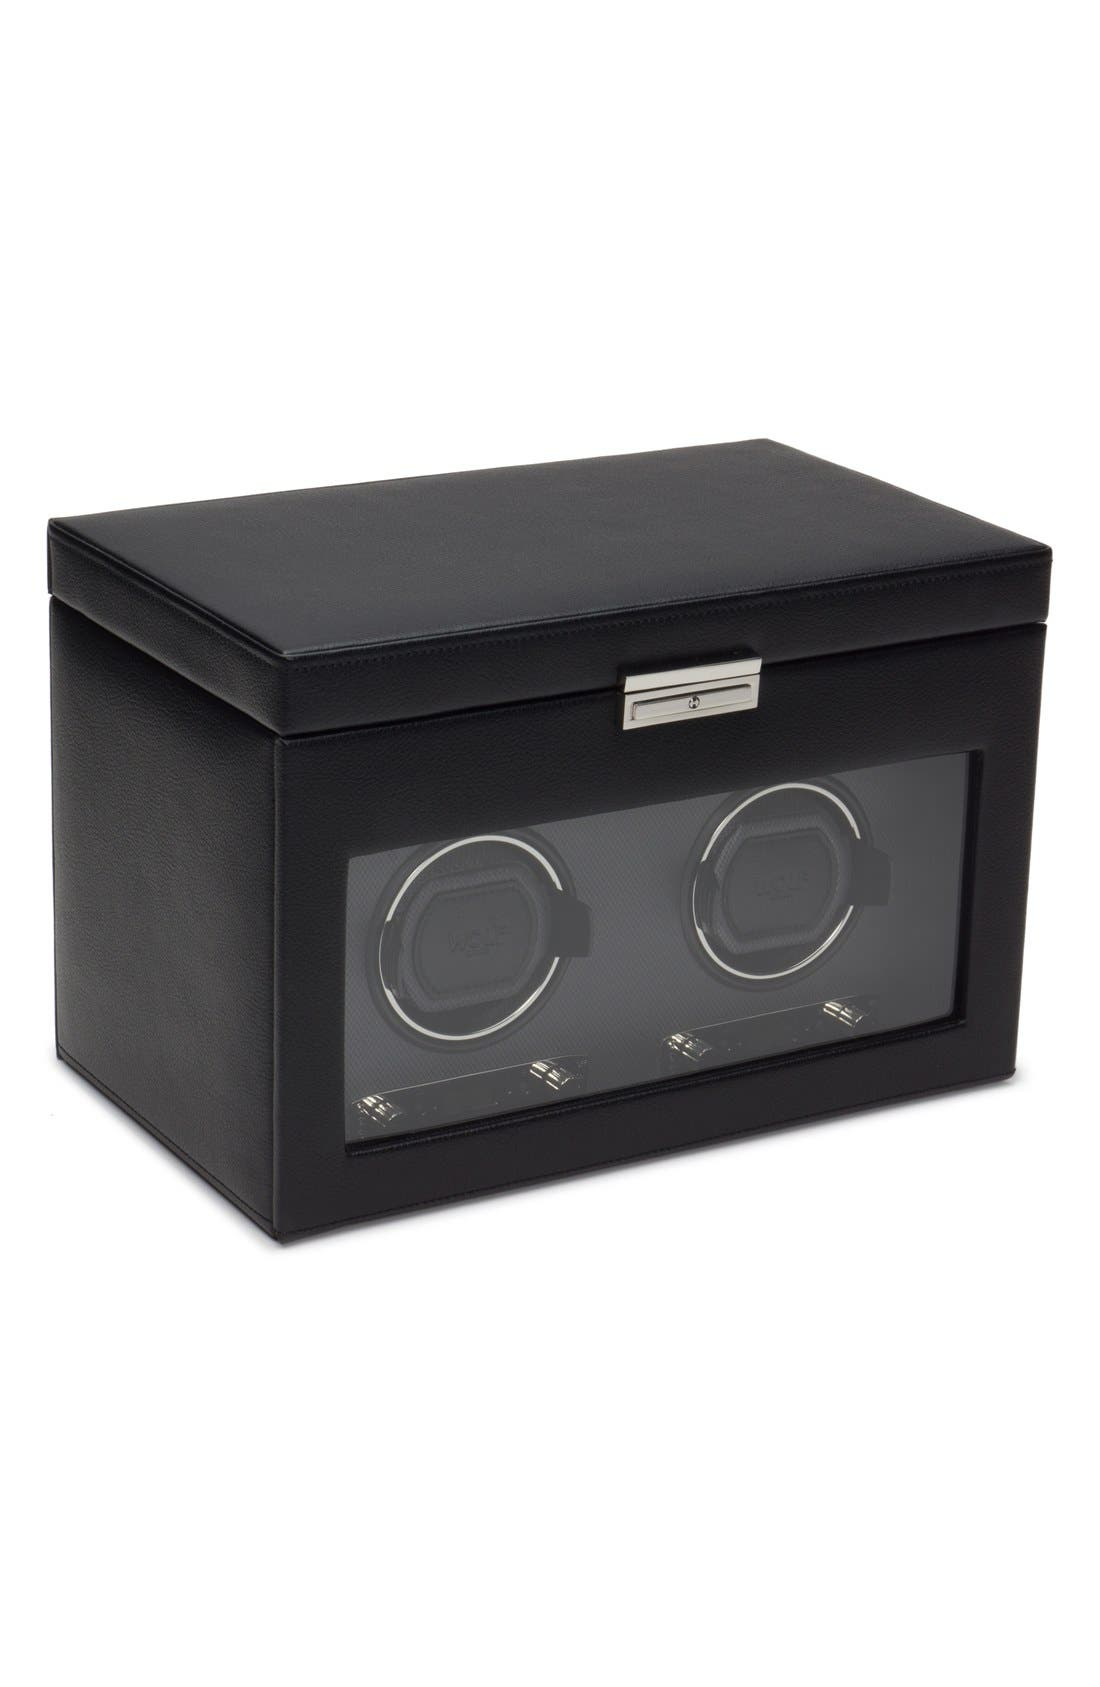 Main Image - Wolf Viceroy Double Watch Winder & Storage Space